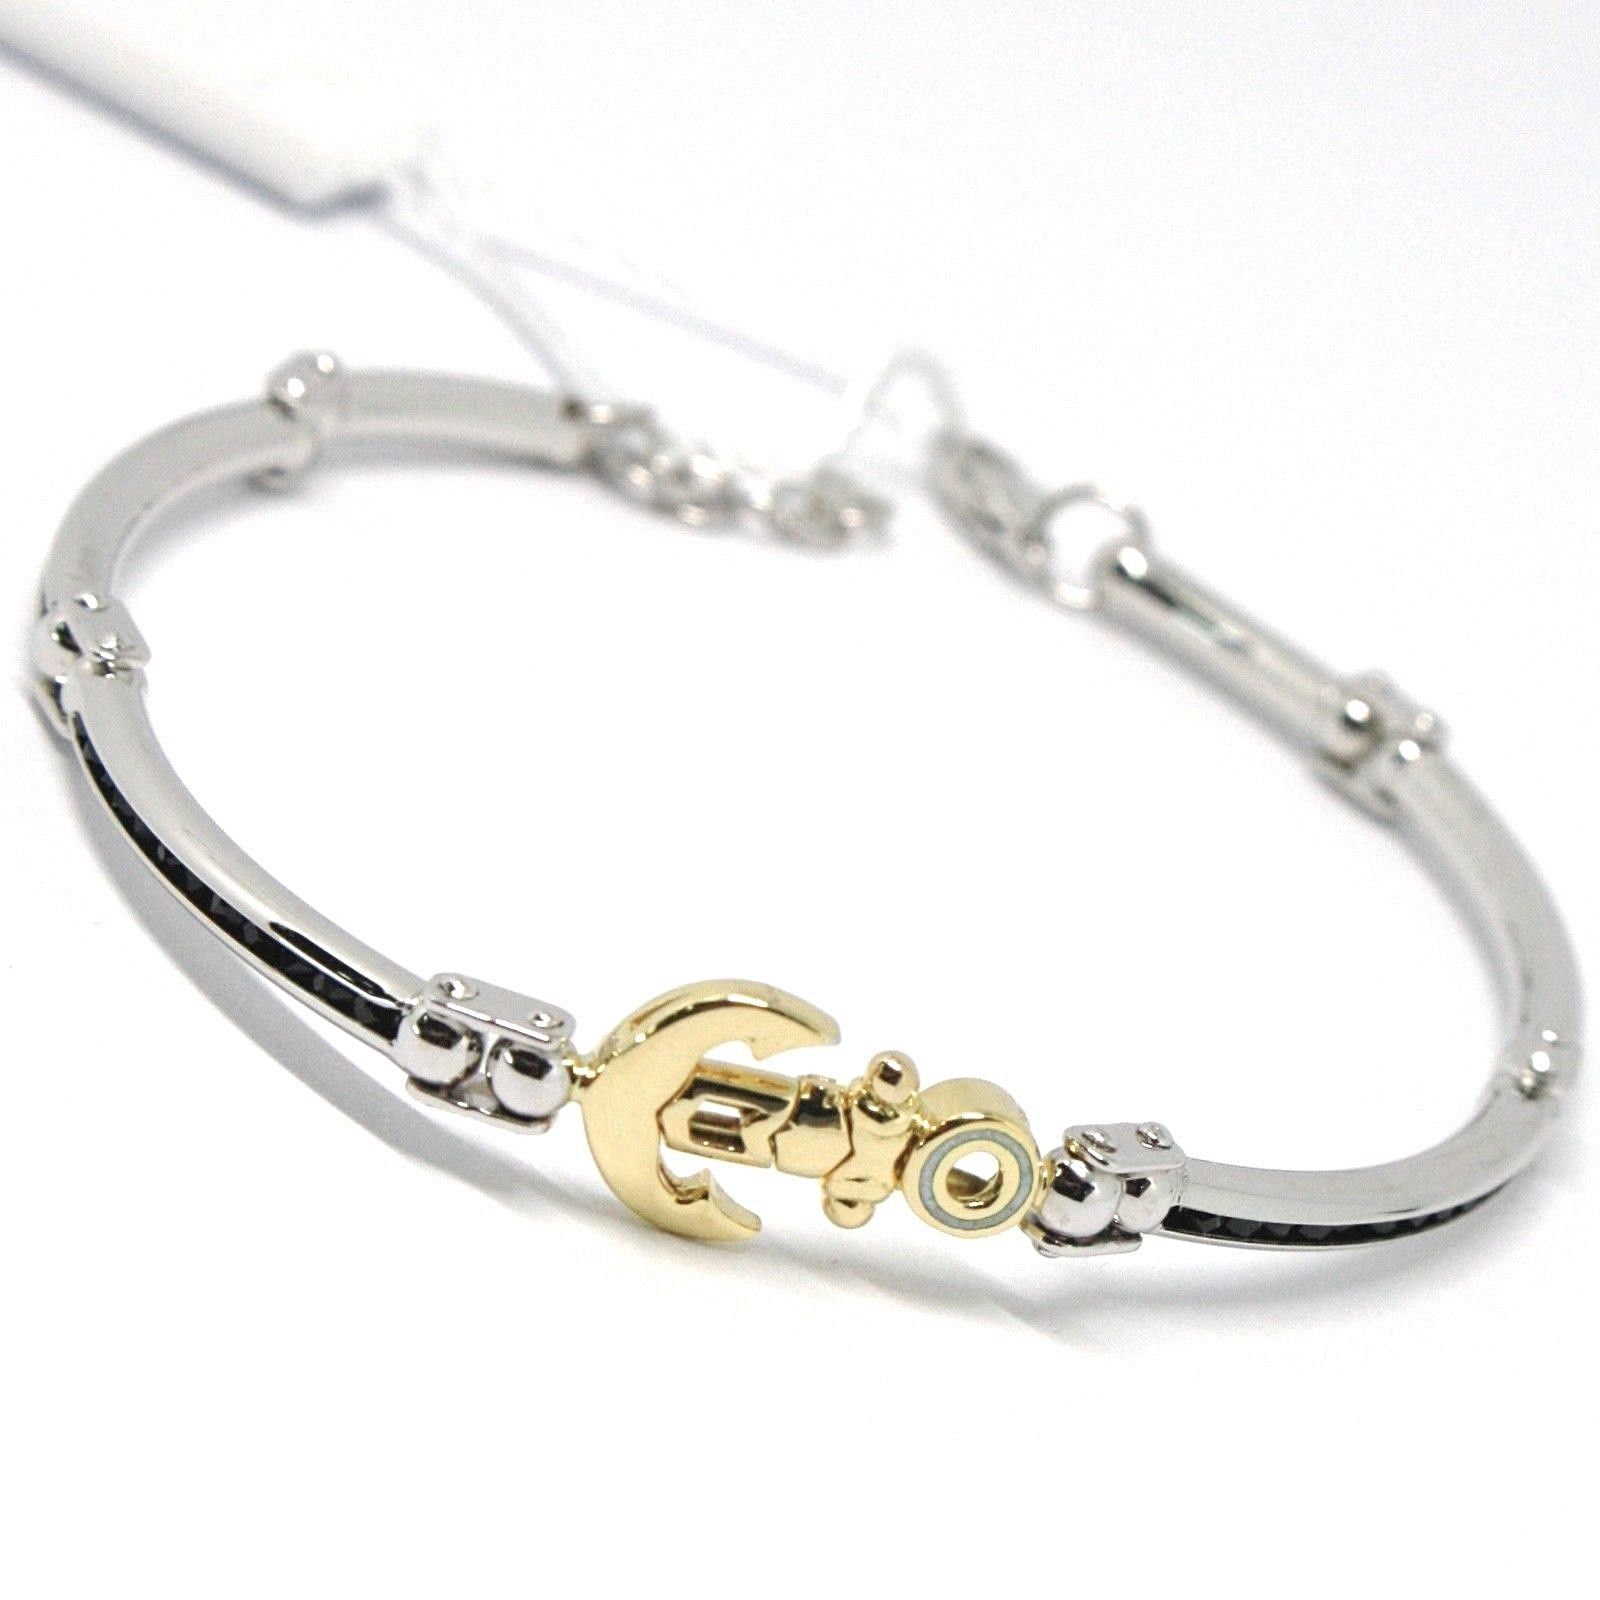 Bracelet Yellow Gold White 18k 750, Seeds Rigid, Anchor Shaped, Zircon Black,